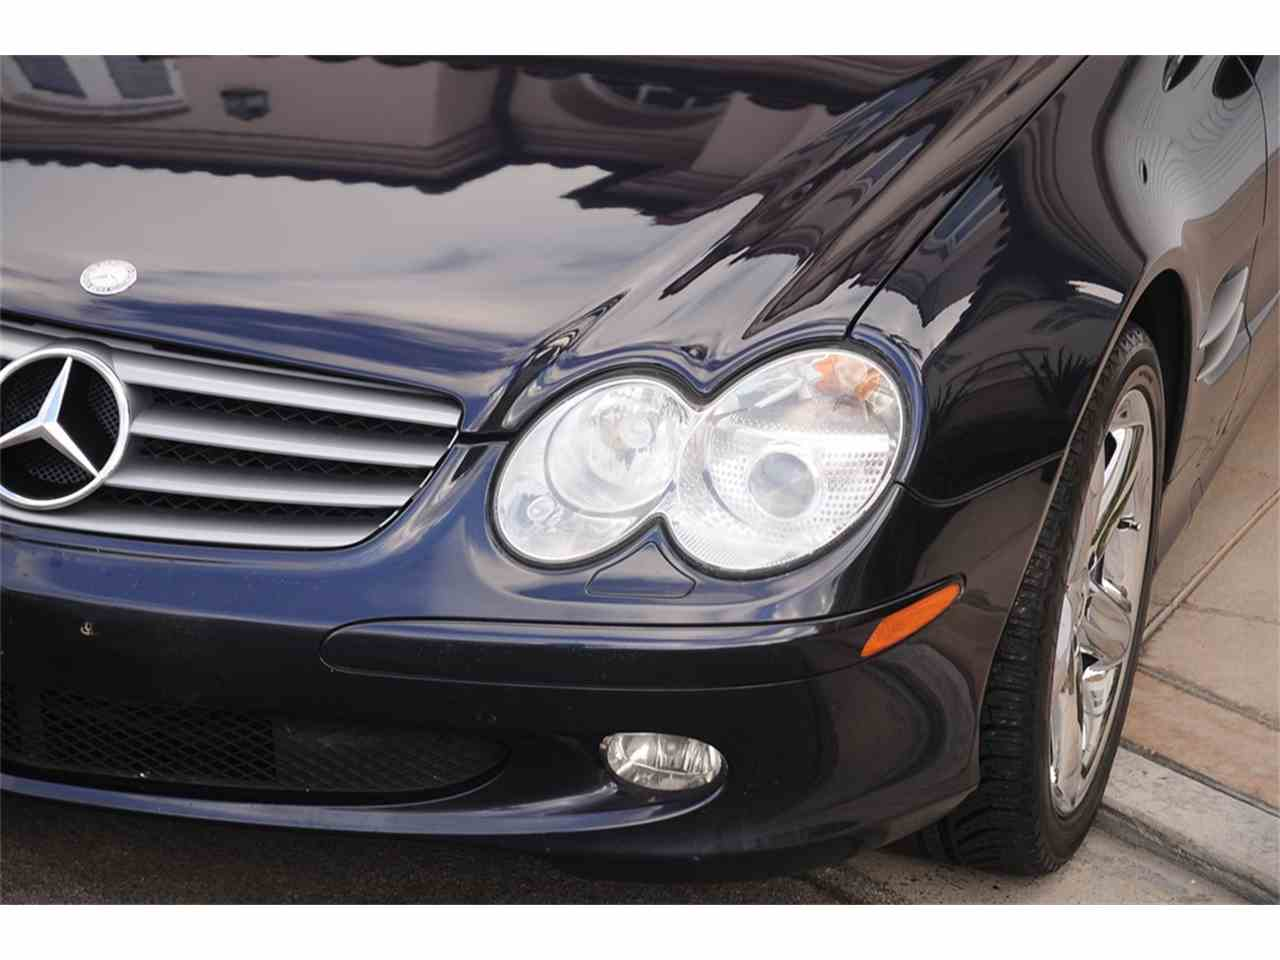 Large Picture of 2003 Mercedes-Benz SL500 located in California Offered by Star European Inc. - M694